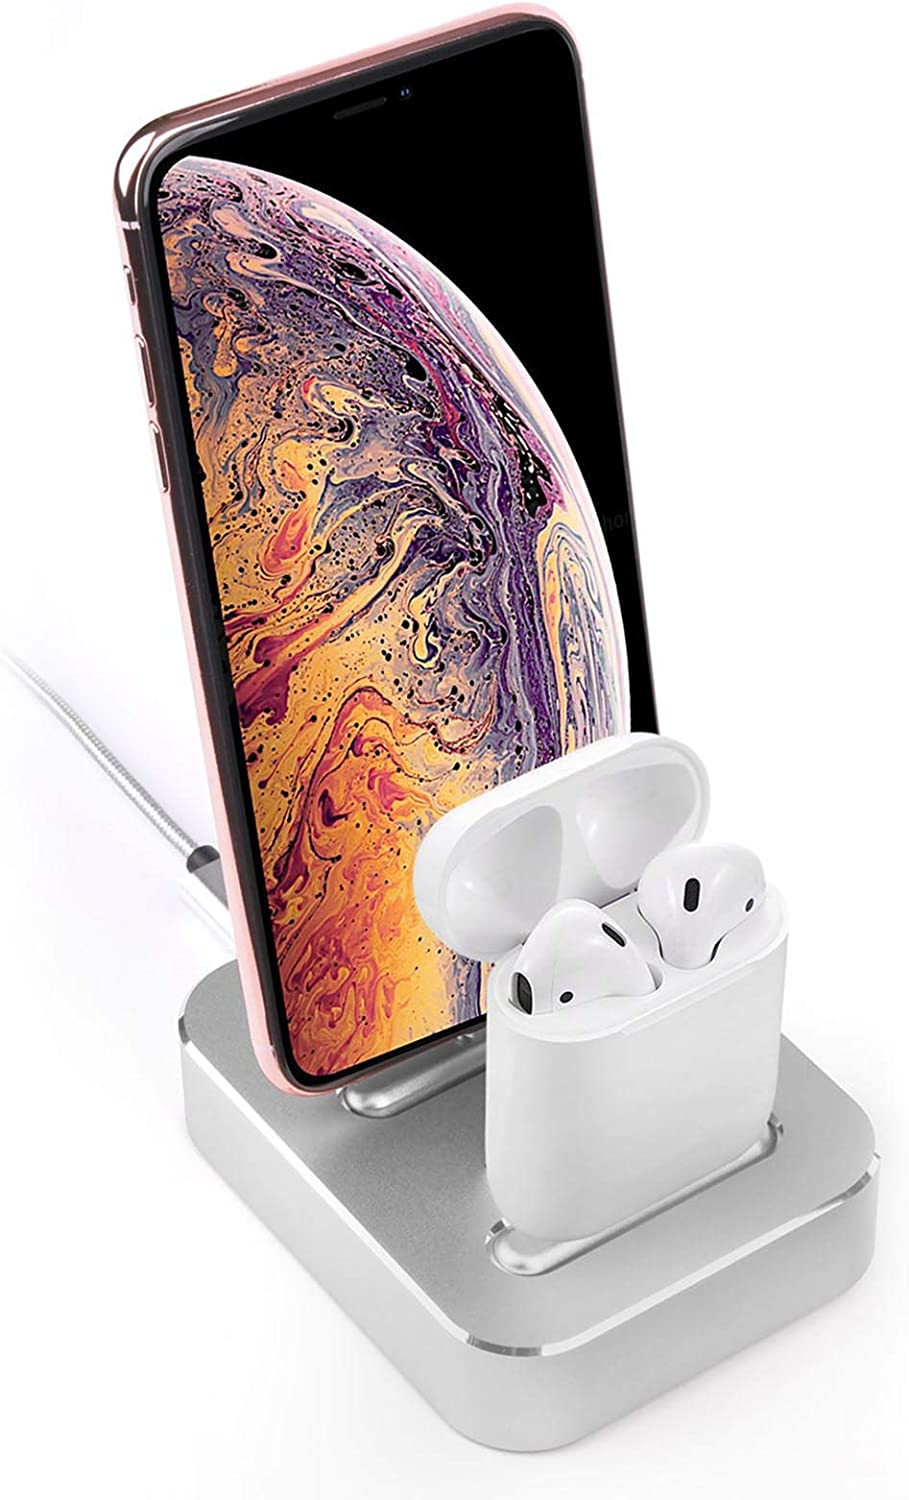 2-in-1 Charging Stand Aluminum Alloy Built-in USB Cell Phone Charging Stations, Dual Charger Station, Mobile Phone Holder Suitable for iPhone 11/XS/8/8Plus/7/iPad/Airpods1/2/Airpods pro (Gray)